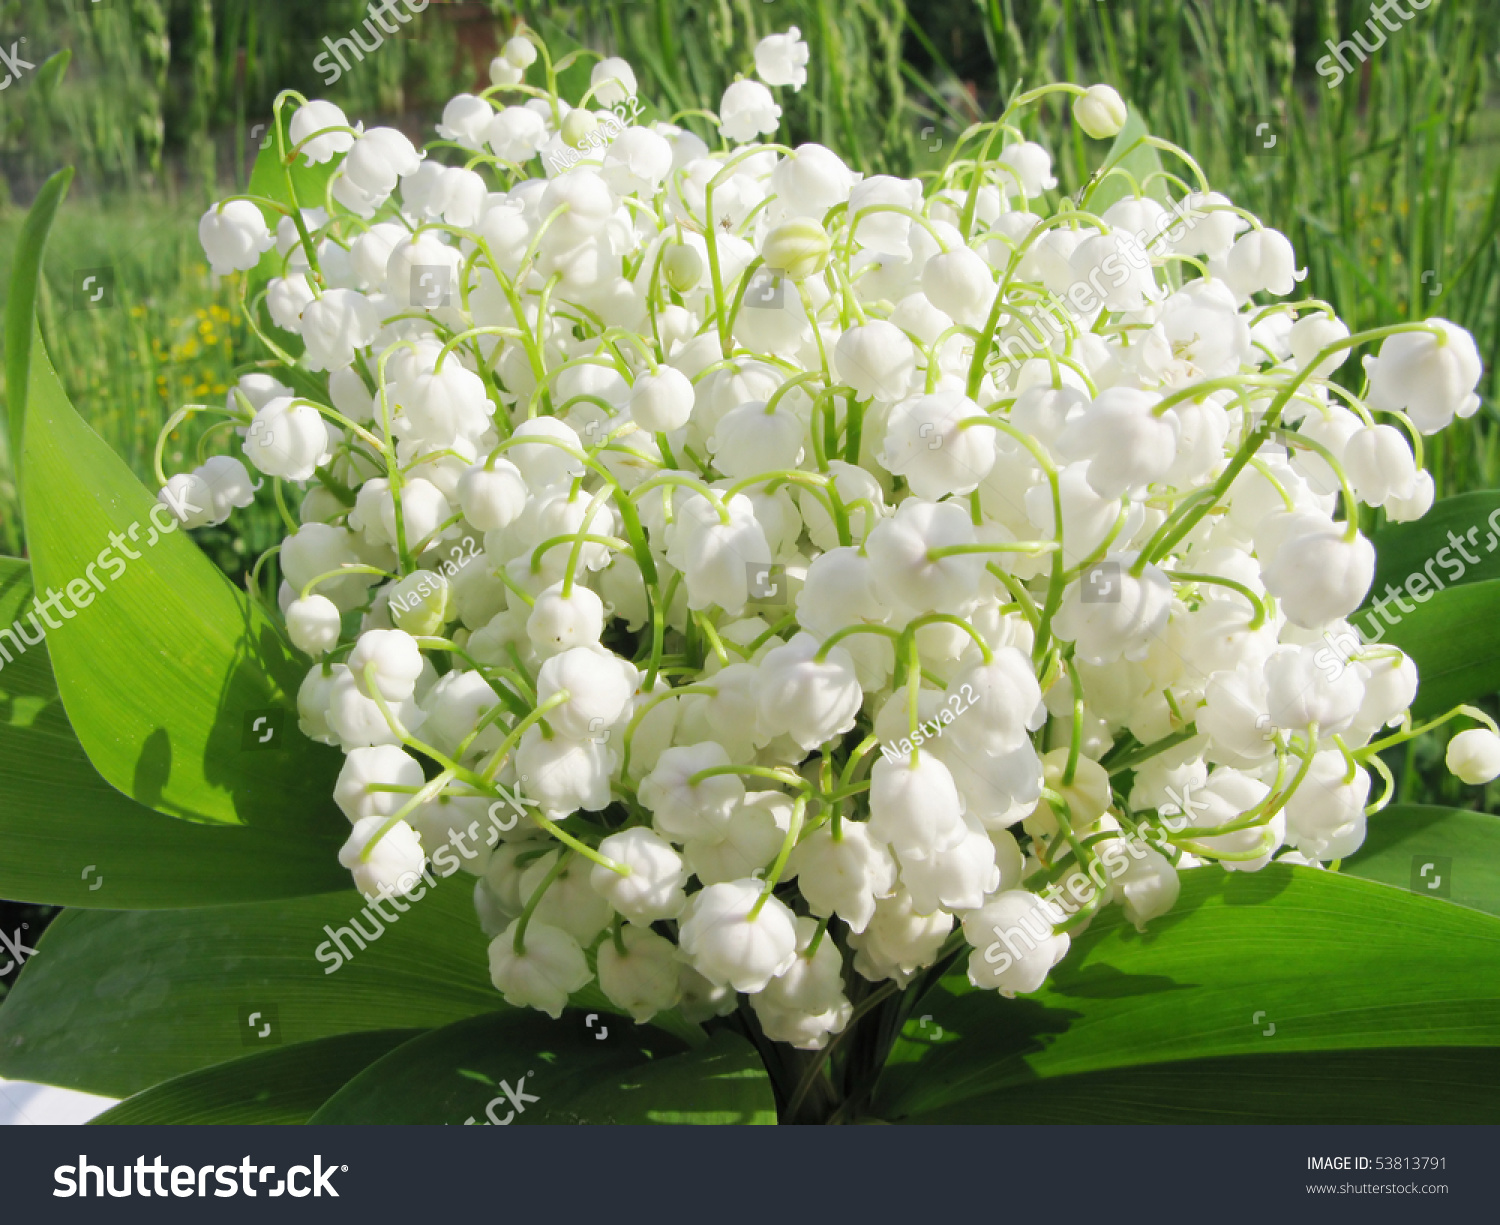 Bouquet lily valley field flowers on stock photo edit now 53813791 bouquet of lily of the valley field flowers on natural background izmirmasajfo